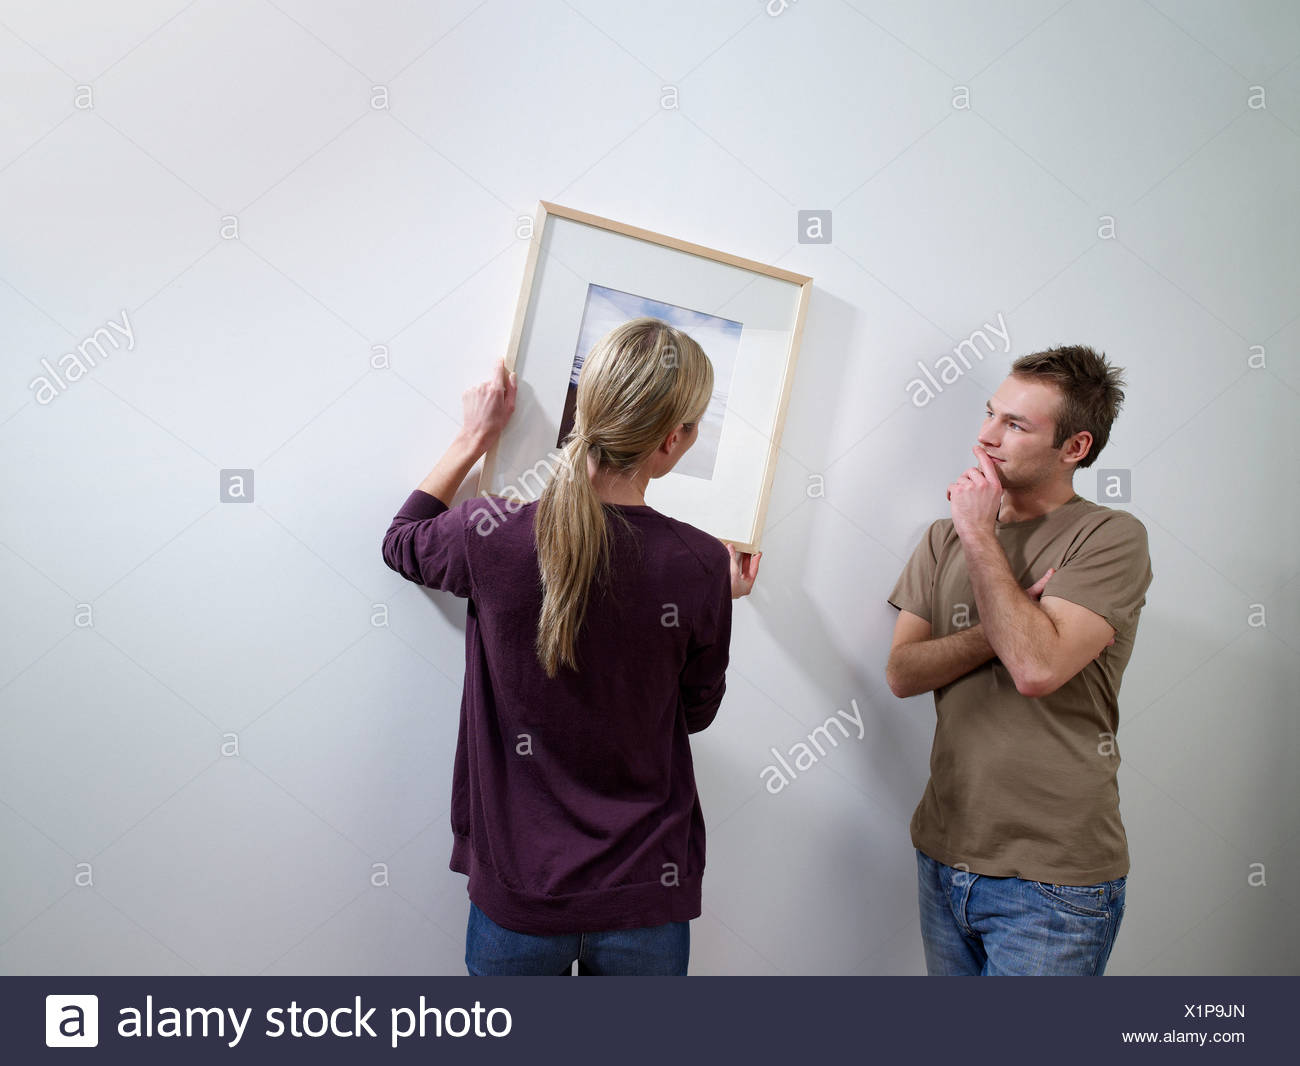 A couple putting art on a wall - Stock Image